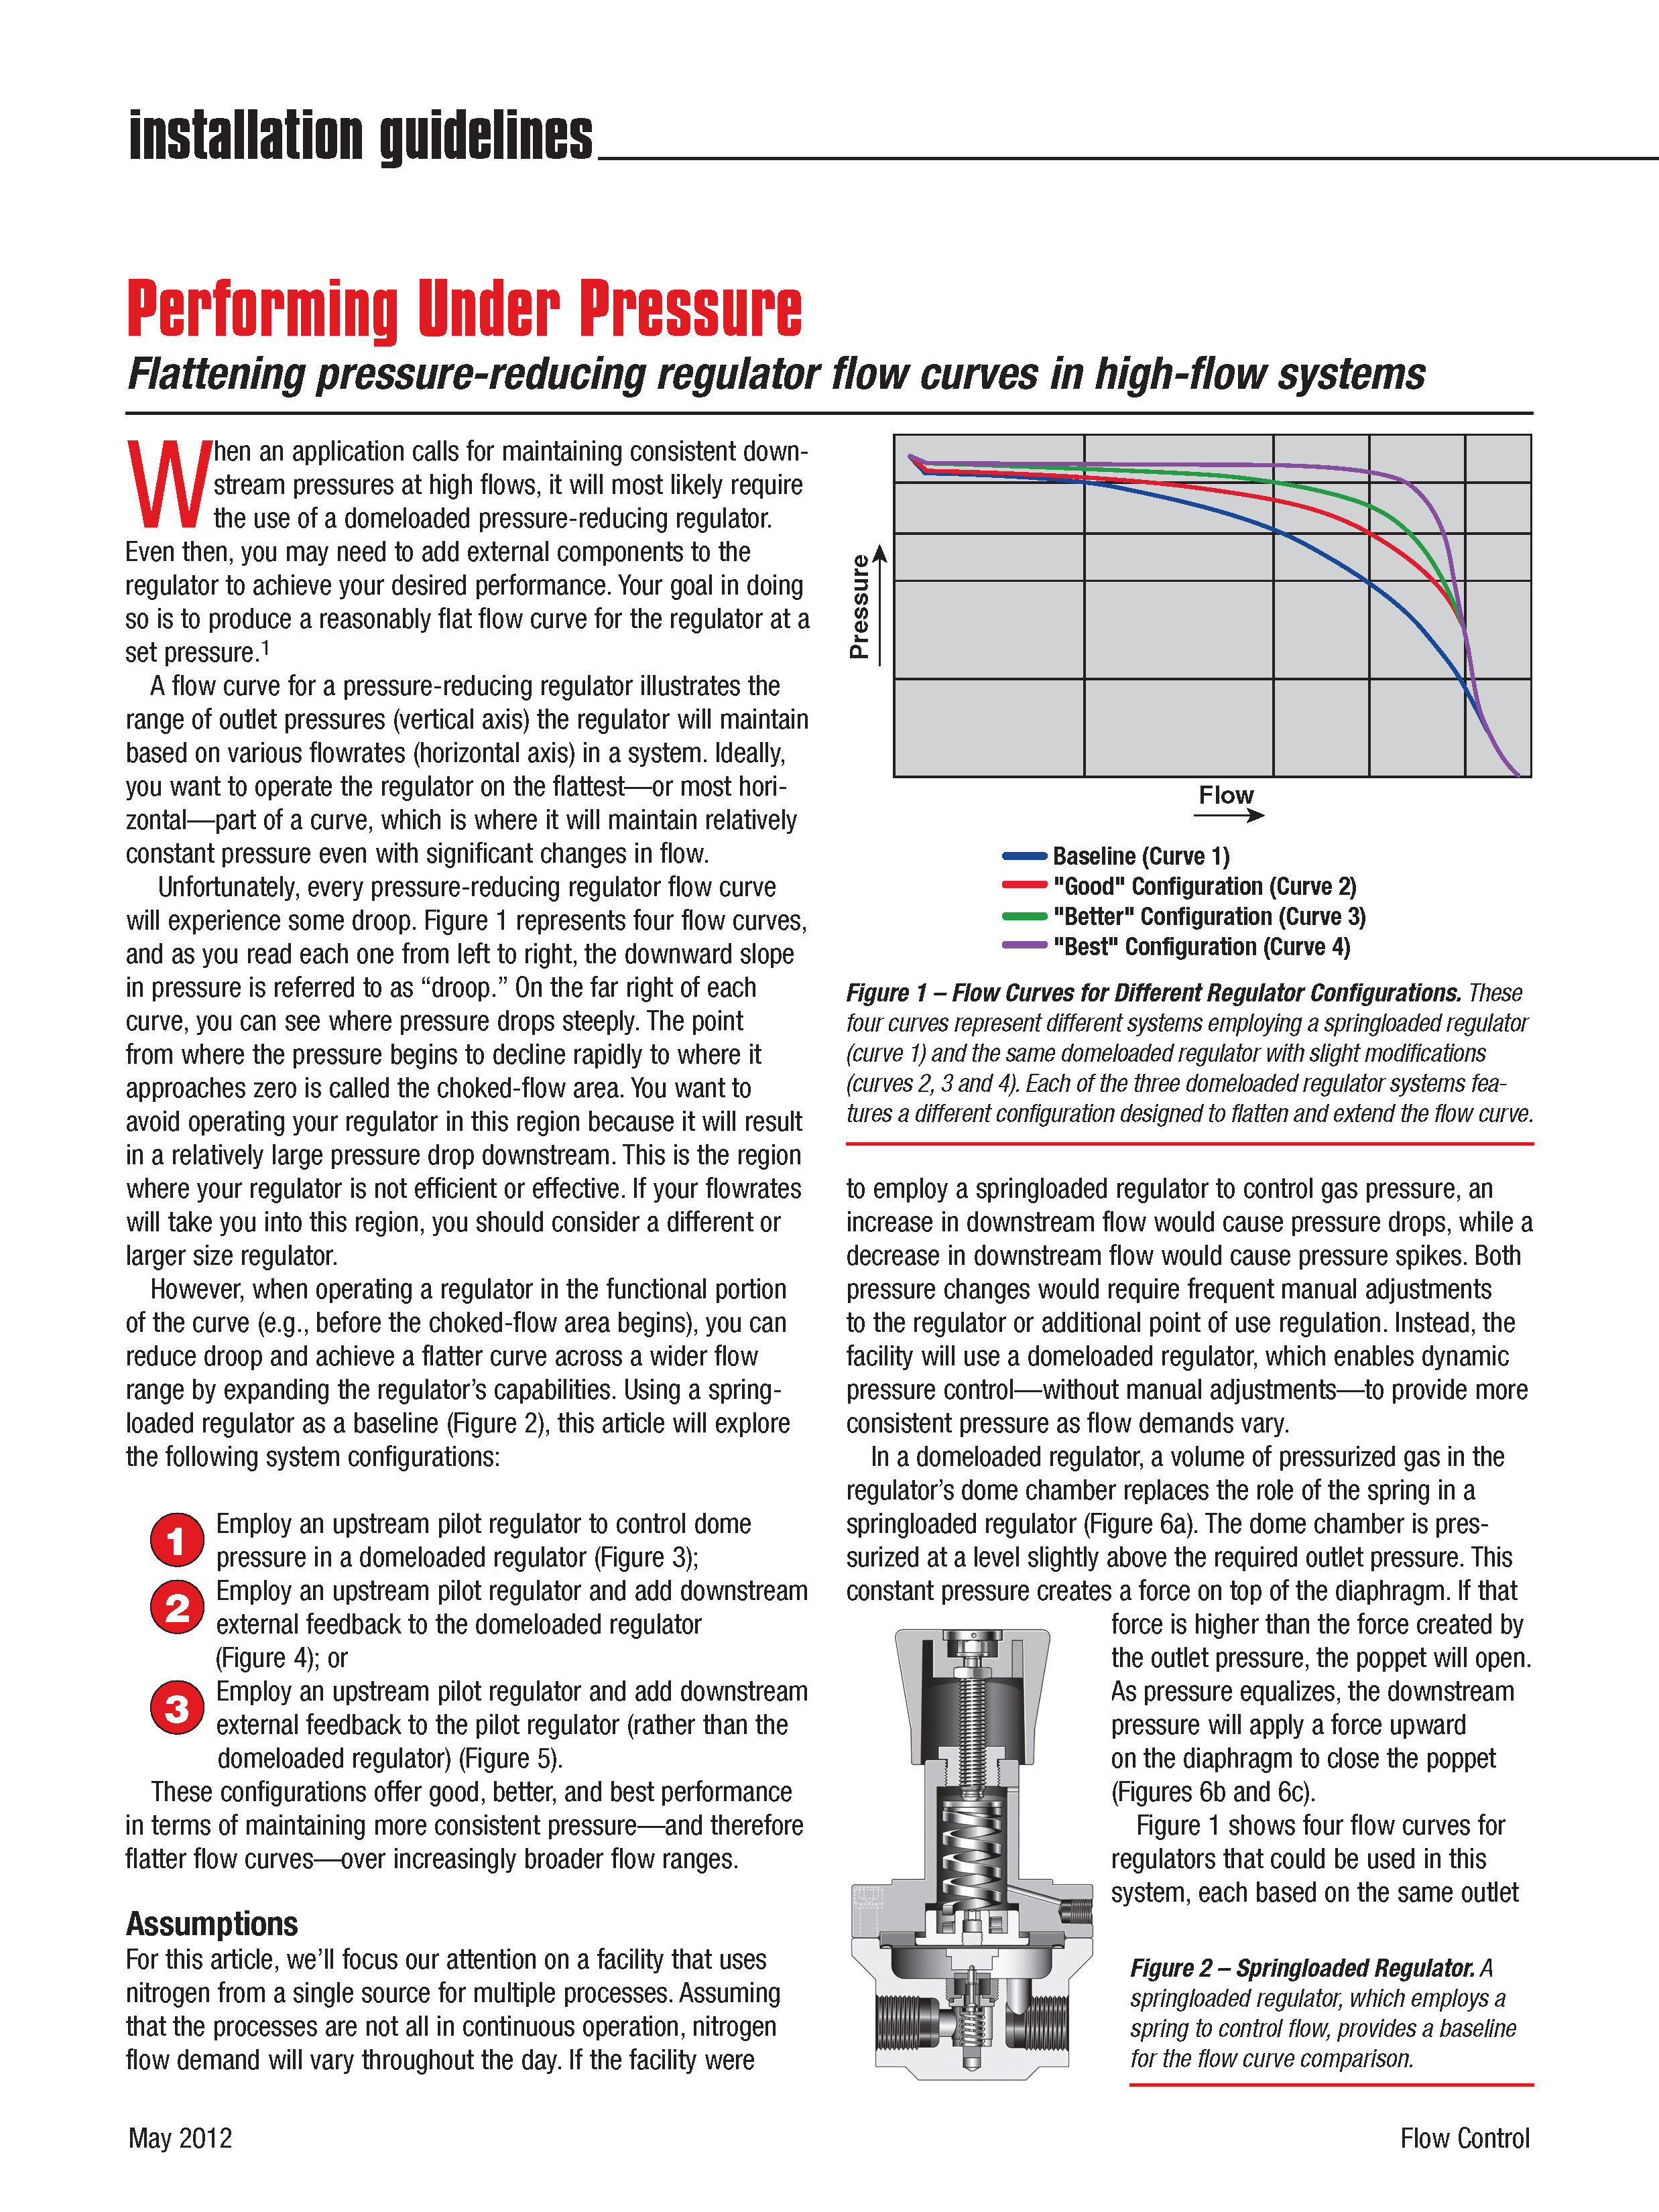 performing_under_pressure_flow_curves_article_reprint_cover_web.png